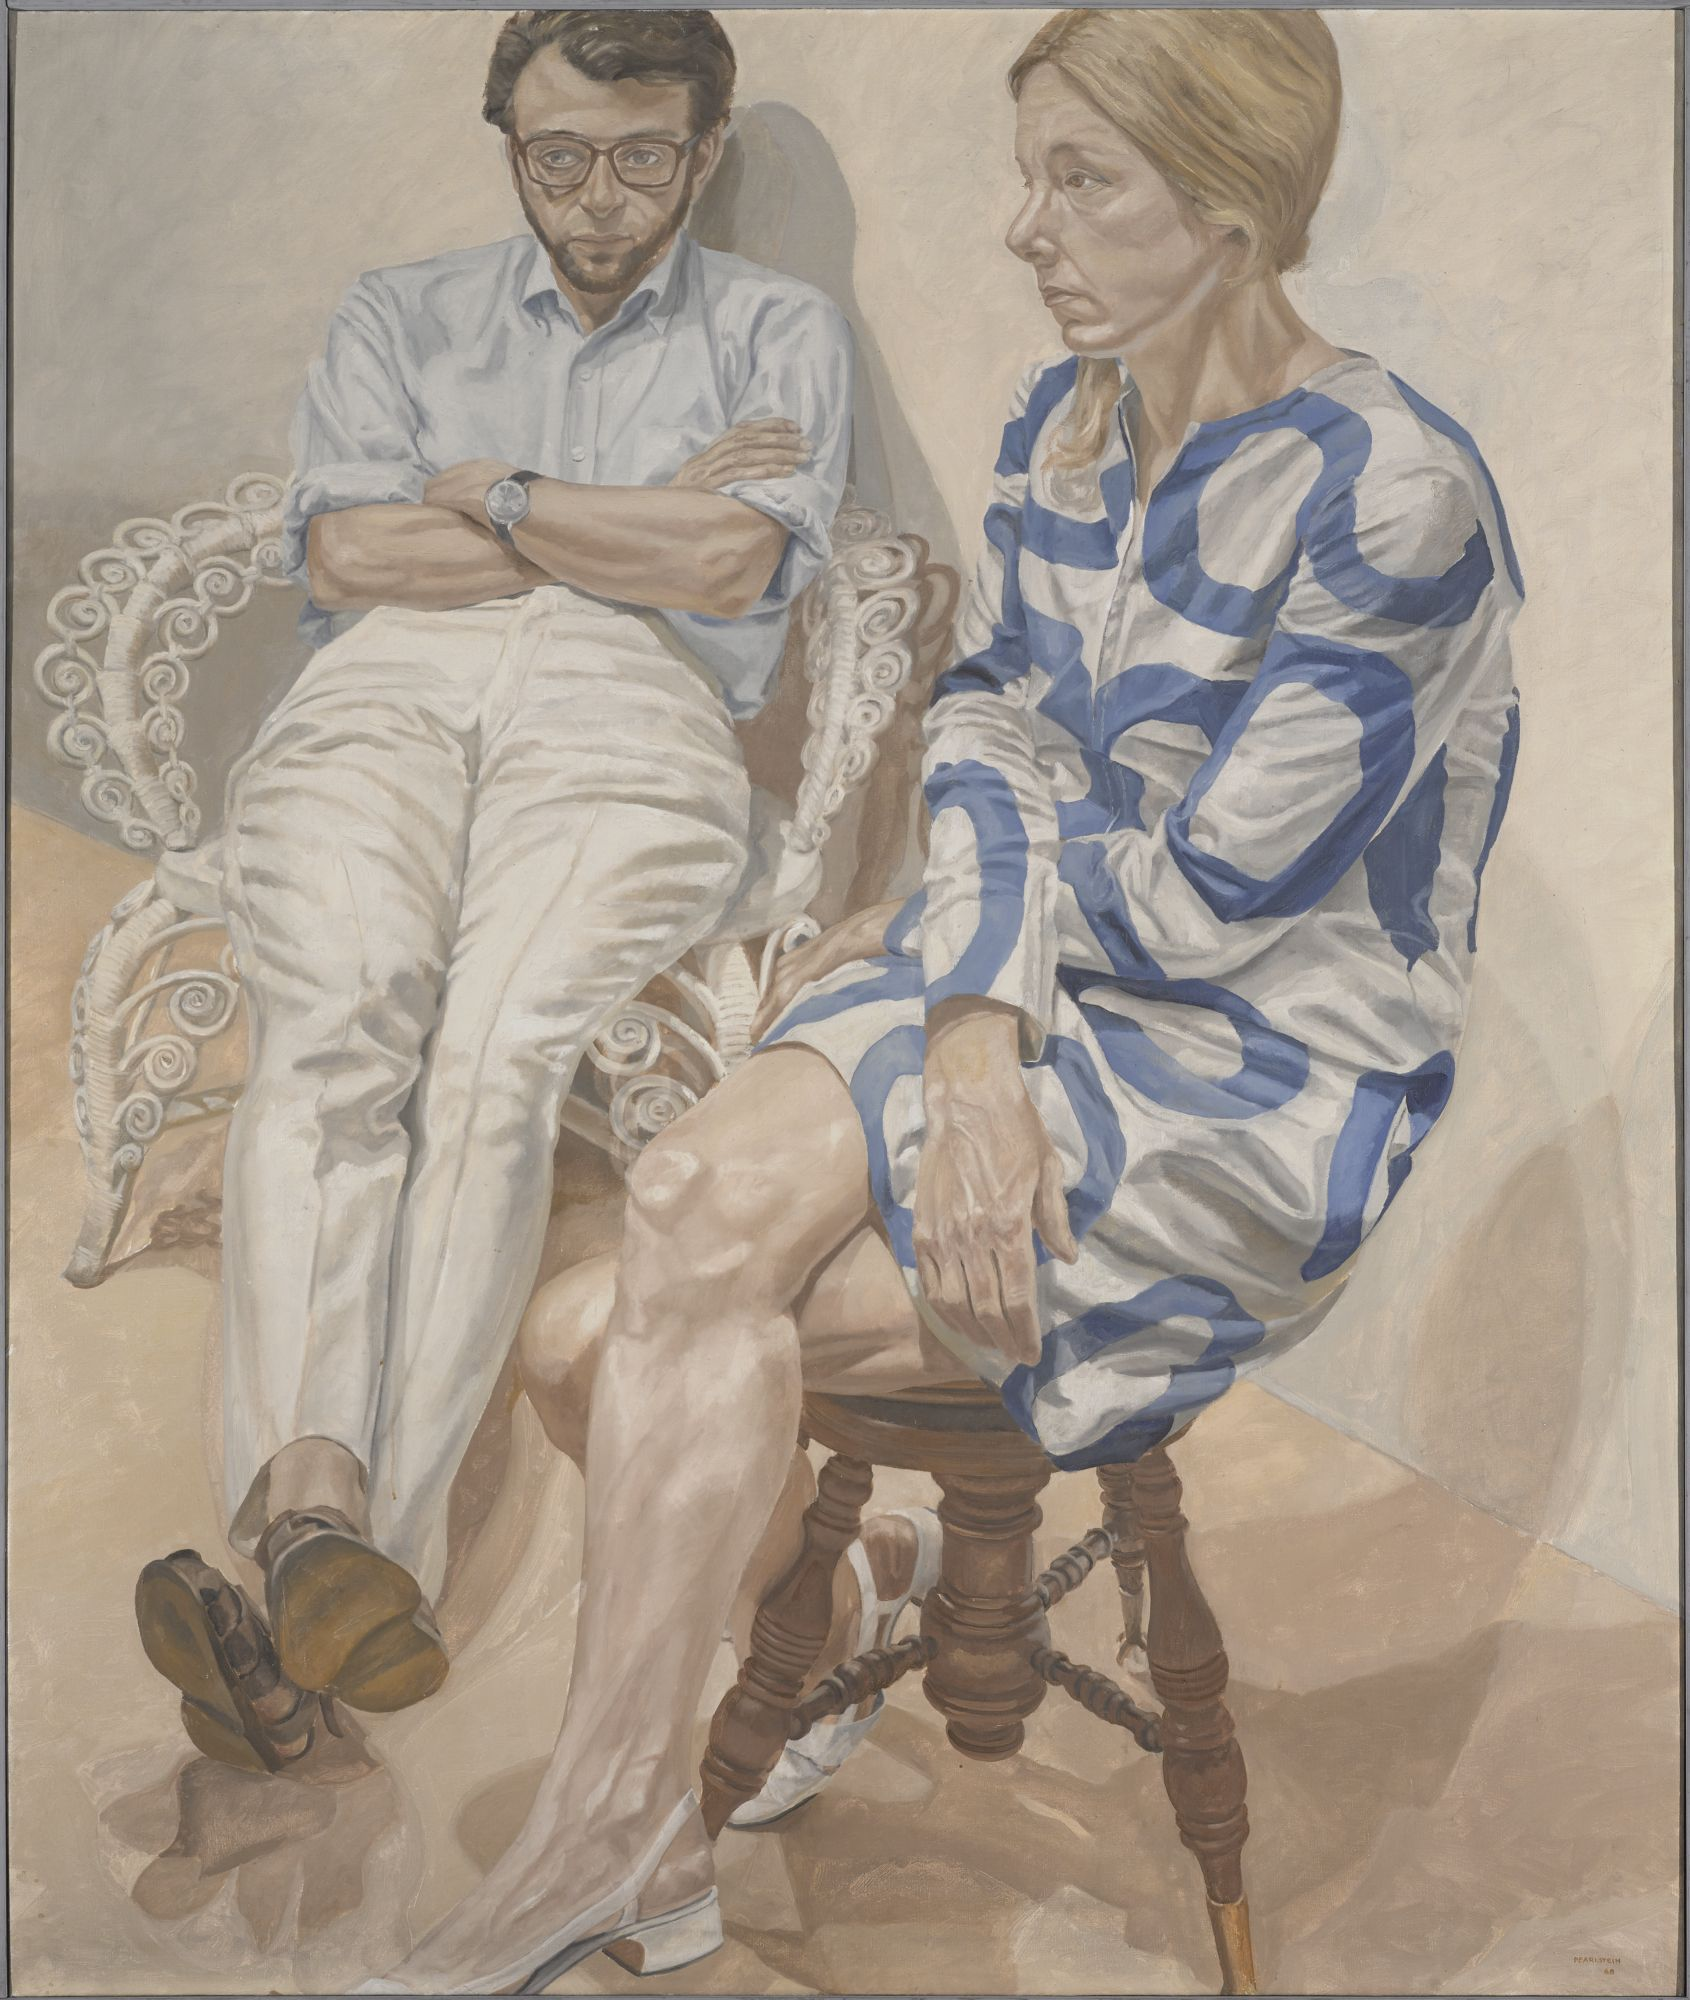 Philip Pearlstein (born Pittsburgh, Pennsylvania, 1924).  Portrait of Linda Nochlin and Richard Pommer , 1968. Oil on canvas, 72 × 60 in. (182.9 × 152.4 cm). Brooklyn Museum; Elizabeth A. Sackler Center for Feminist Art, Gift of the Estate of Linda Nochlin Pommer, TL2018.12. © Philip Pearlstein. (Photo: Jonathan Dorado, Brooklyn Museum)